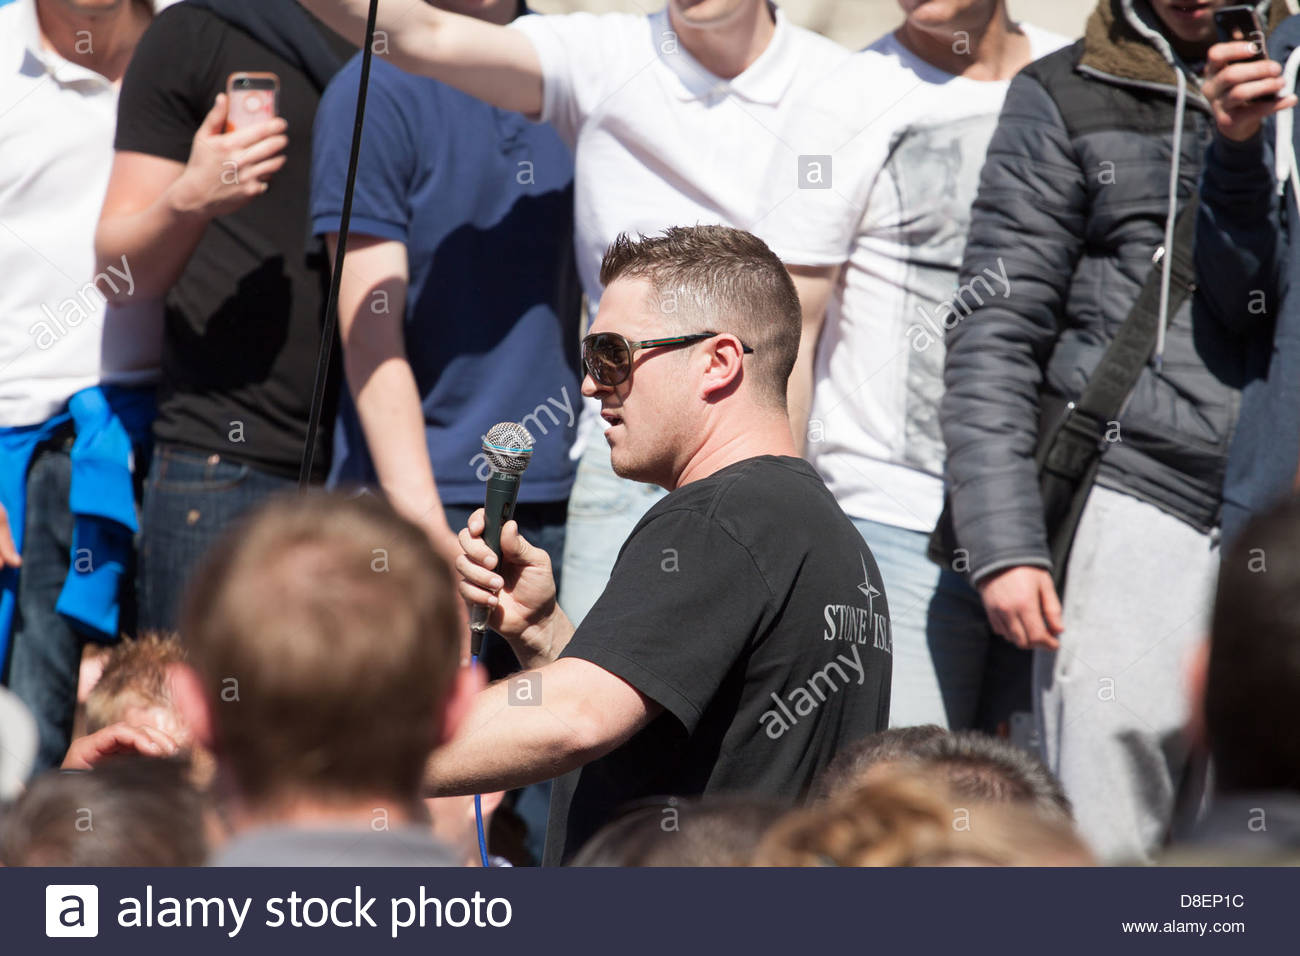 EDL leader, Tommy Robinson, gives his speech. - Stock Image